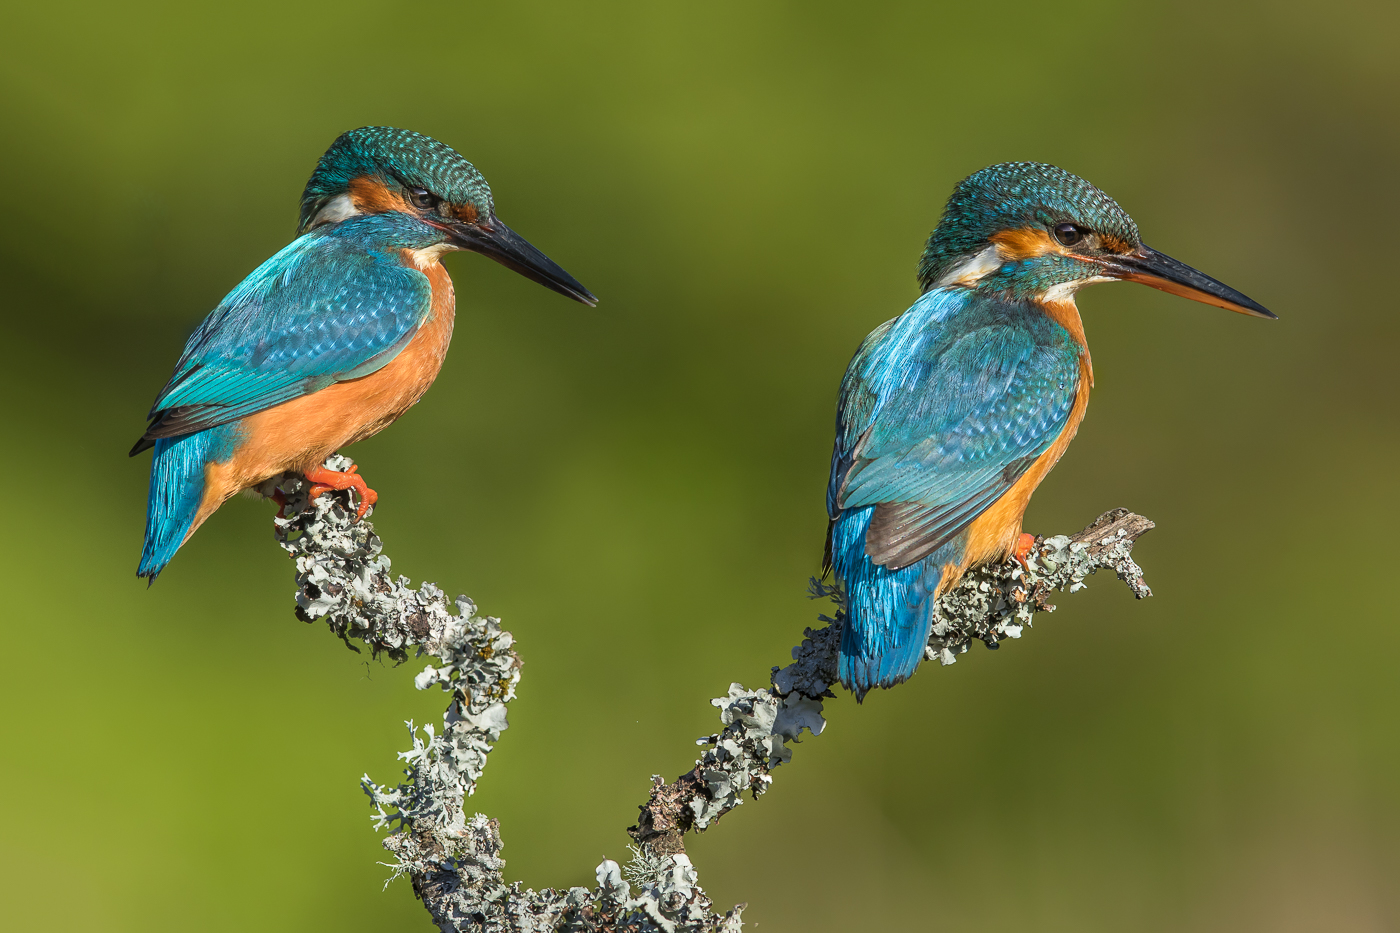 Male and Female Kingfisher